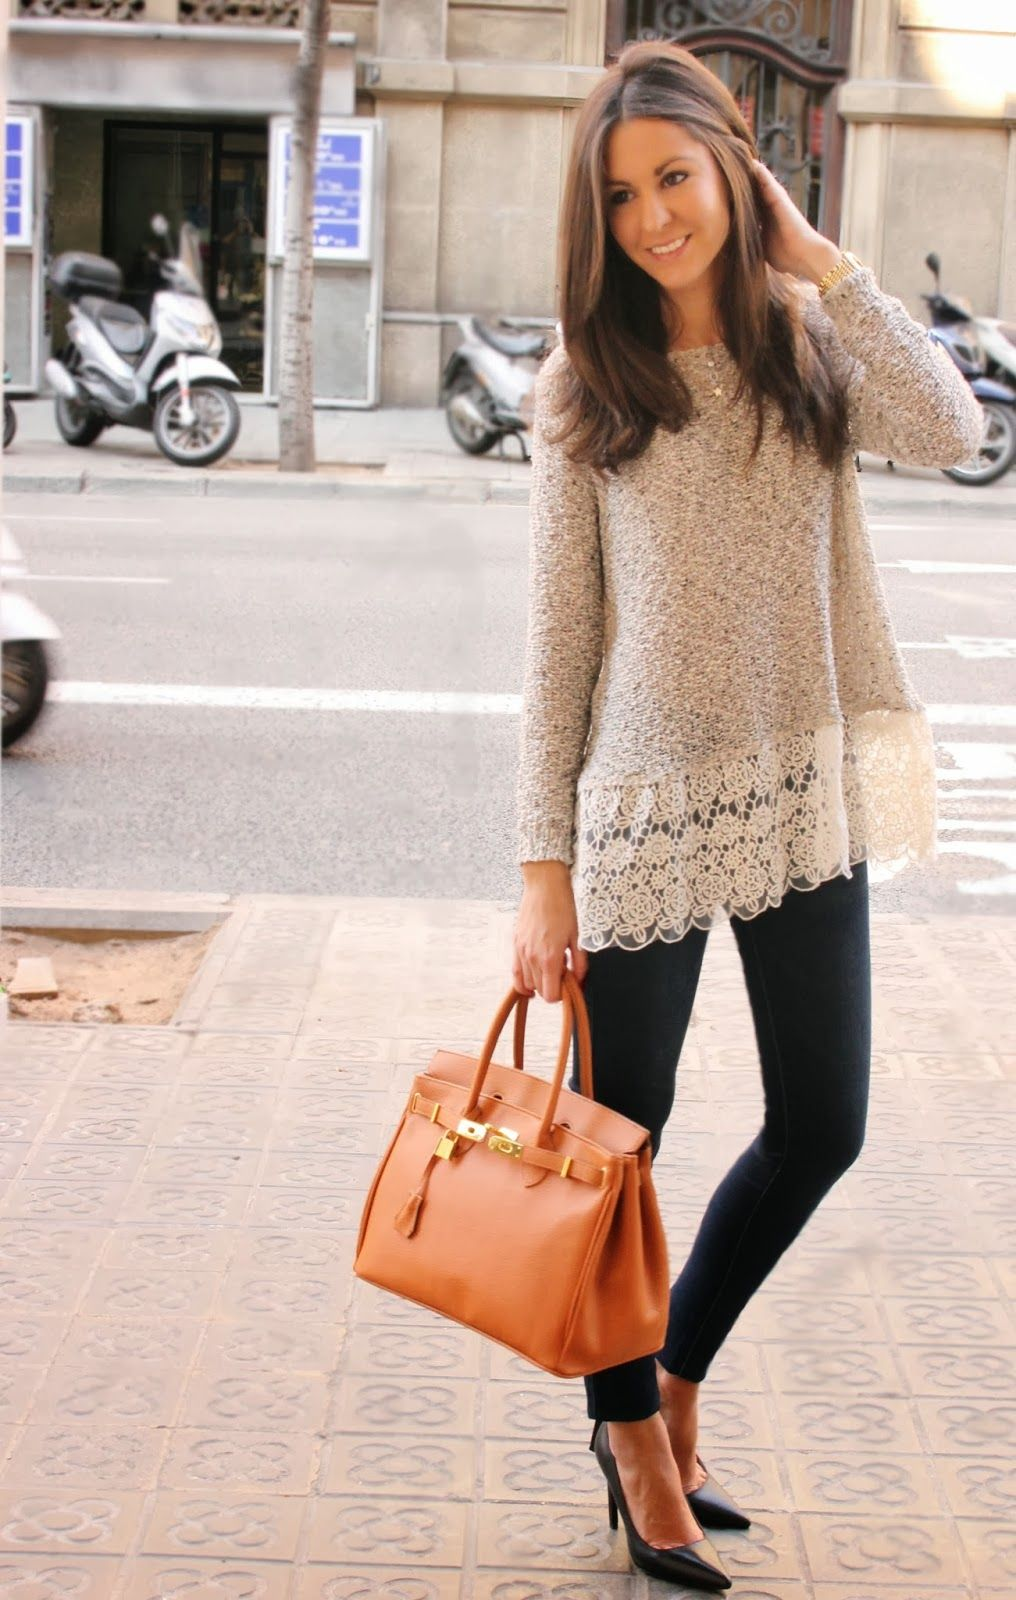 Bcn fashionista special sweater moda pinterest clothes fall